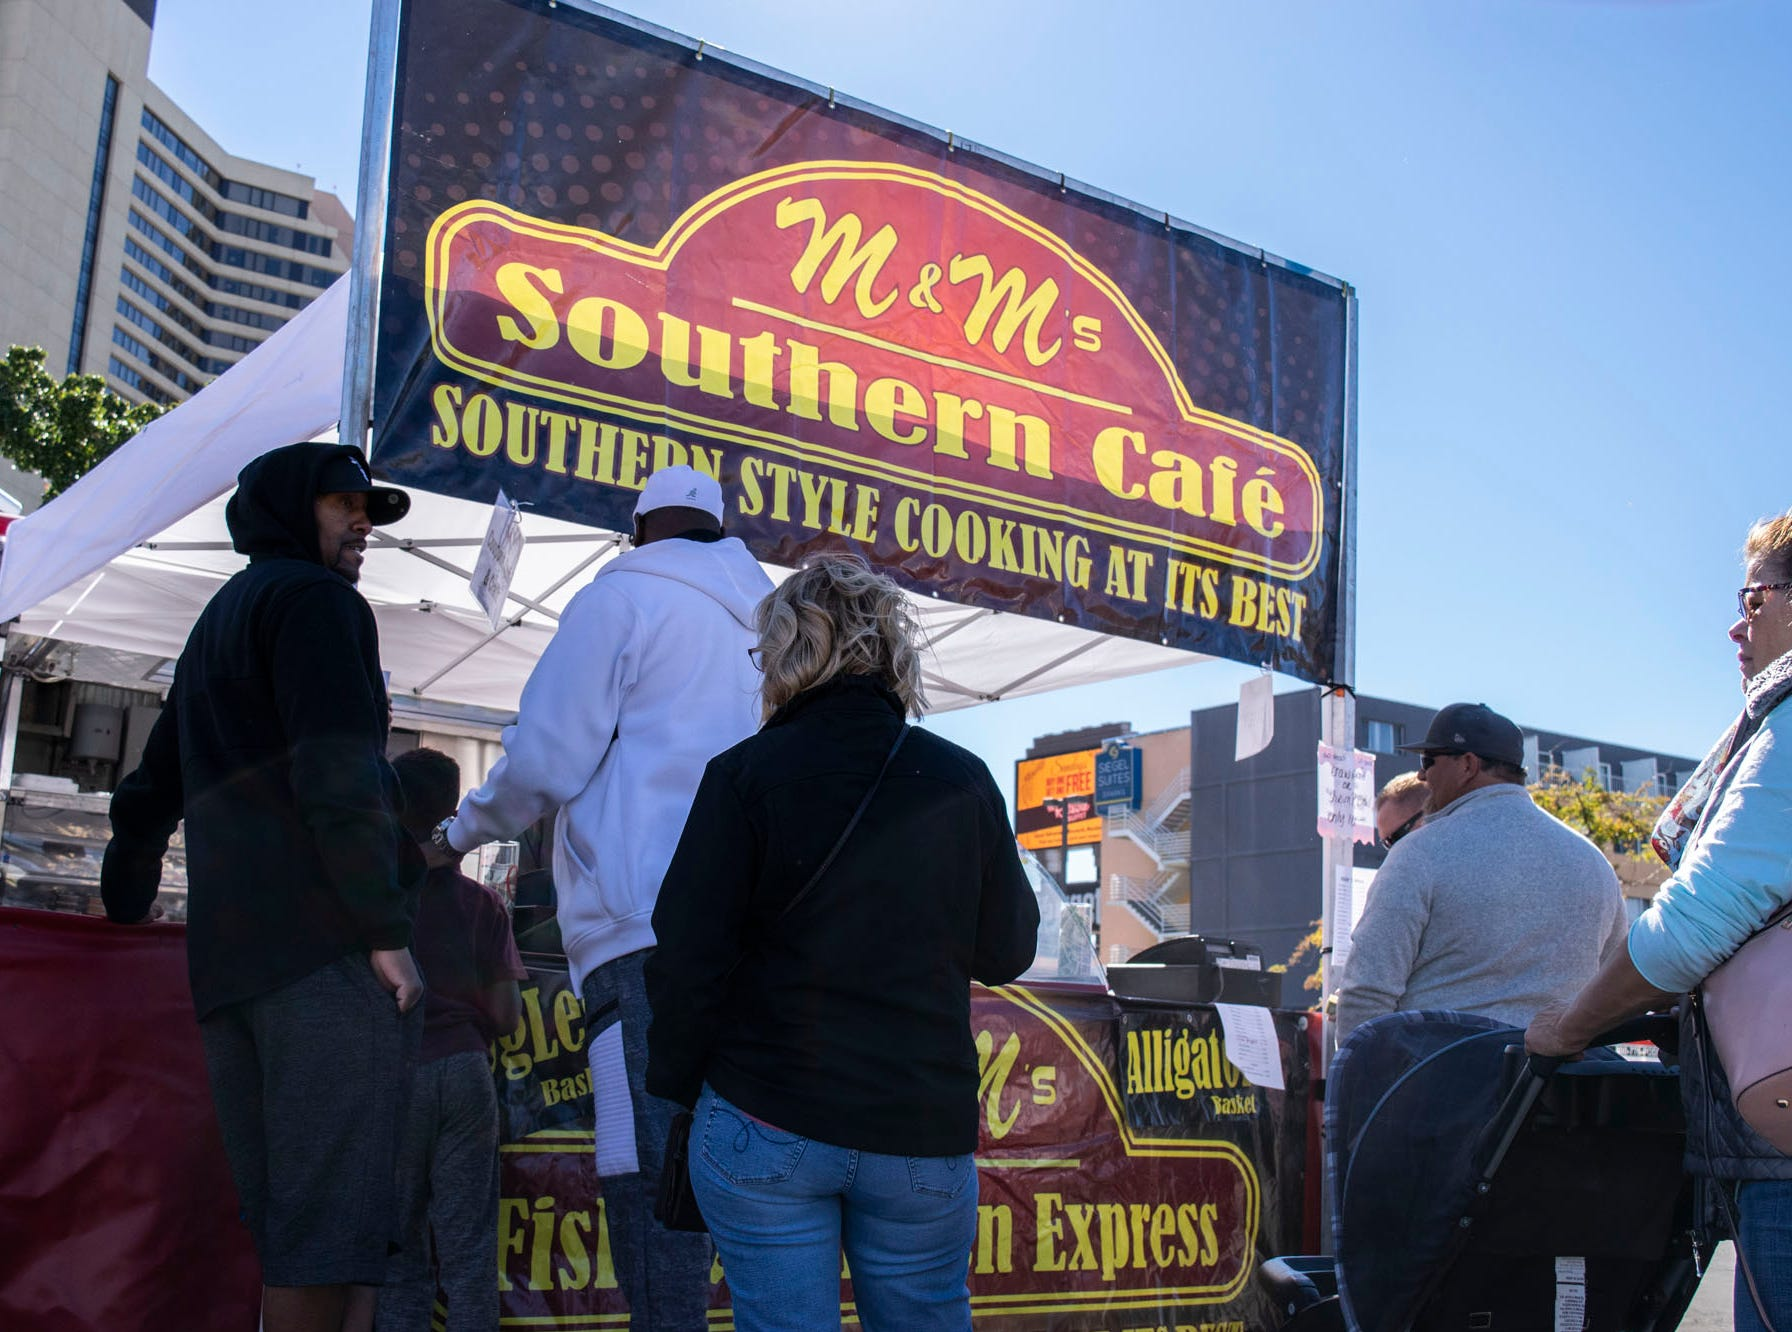 Scenes from the Nugget's Southern Fare on the Square on Sunday, Oct. 14, 2018. Sparks, Nev.